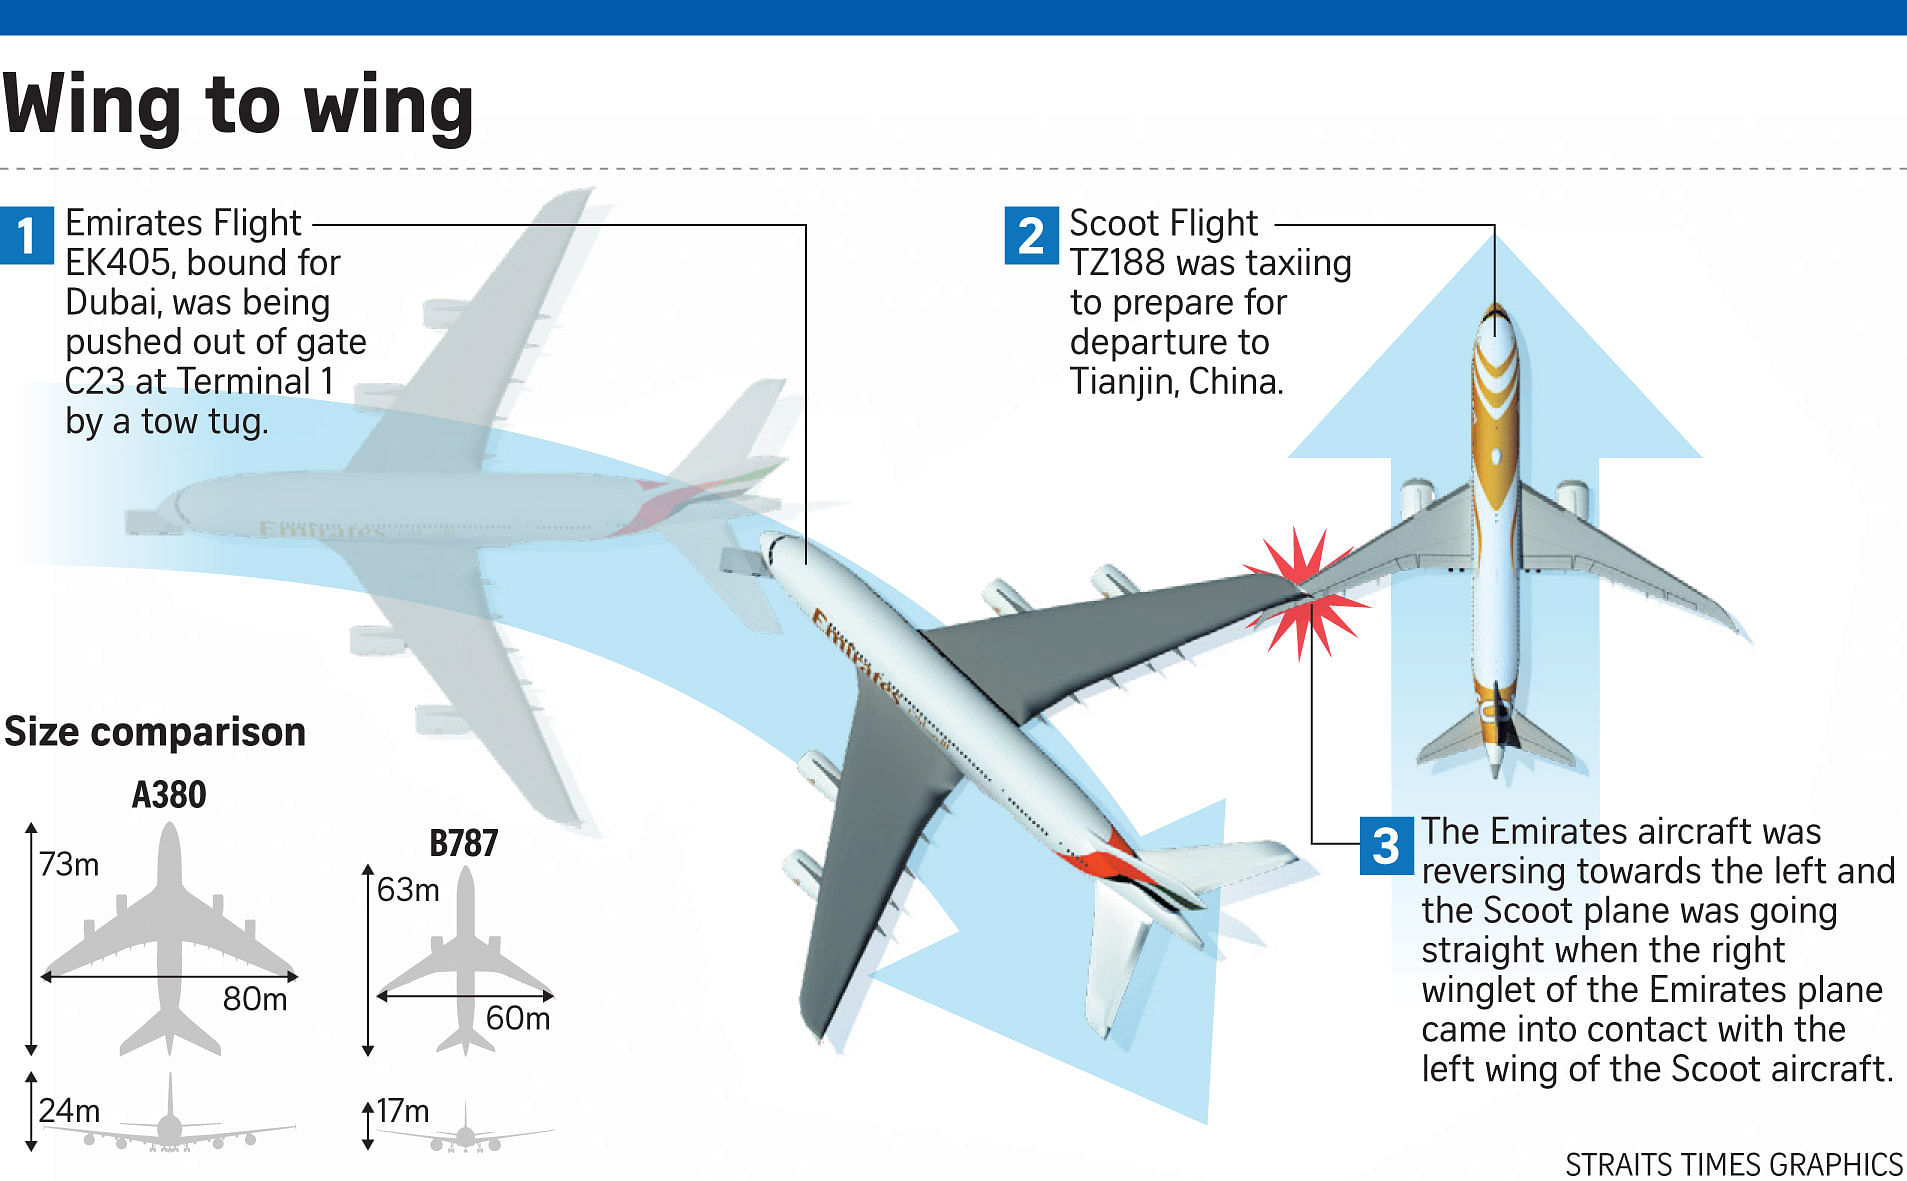 Ek Tz Collision Changi Sqtalk Plane Wing Diagram Explains Some Dont Know Much About Airport Ground Traffic Rules Anyone Can Explain Is It The Tow Truck Drivers Fault